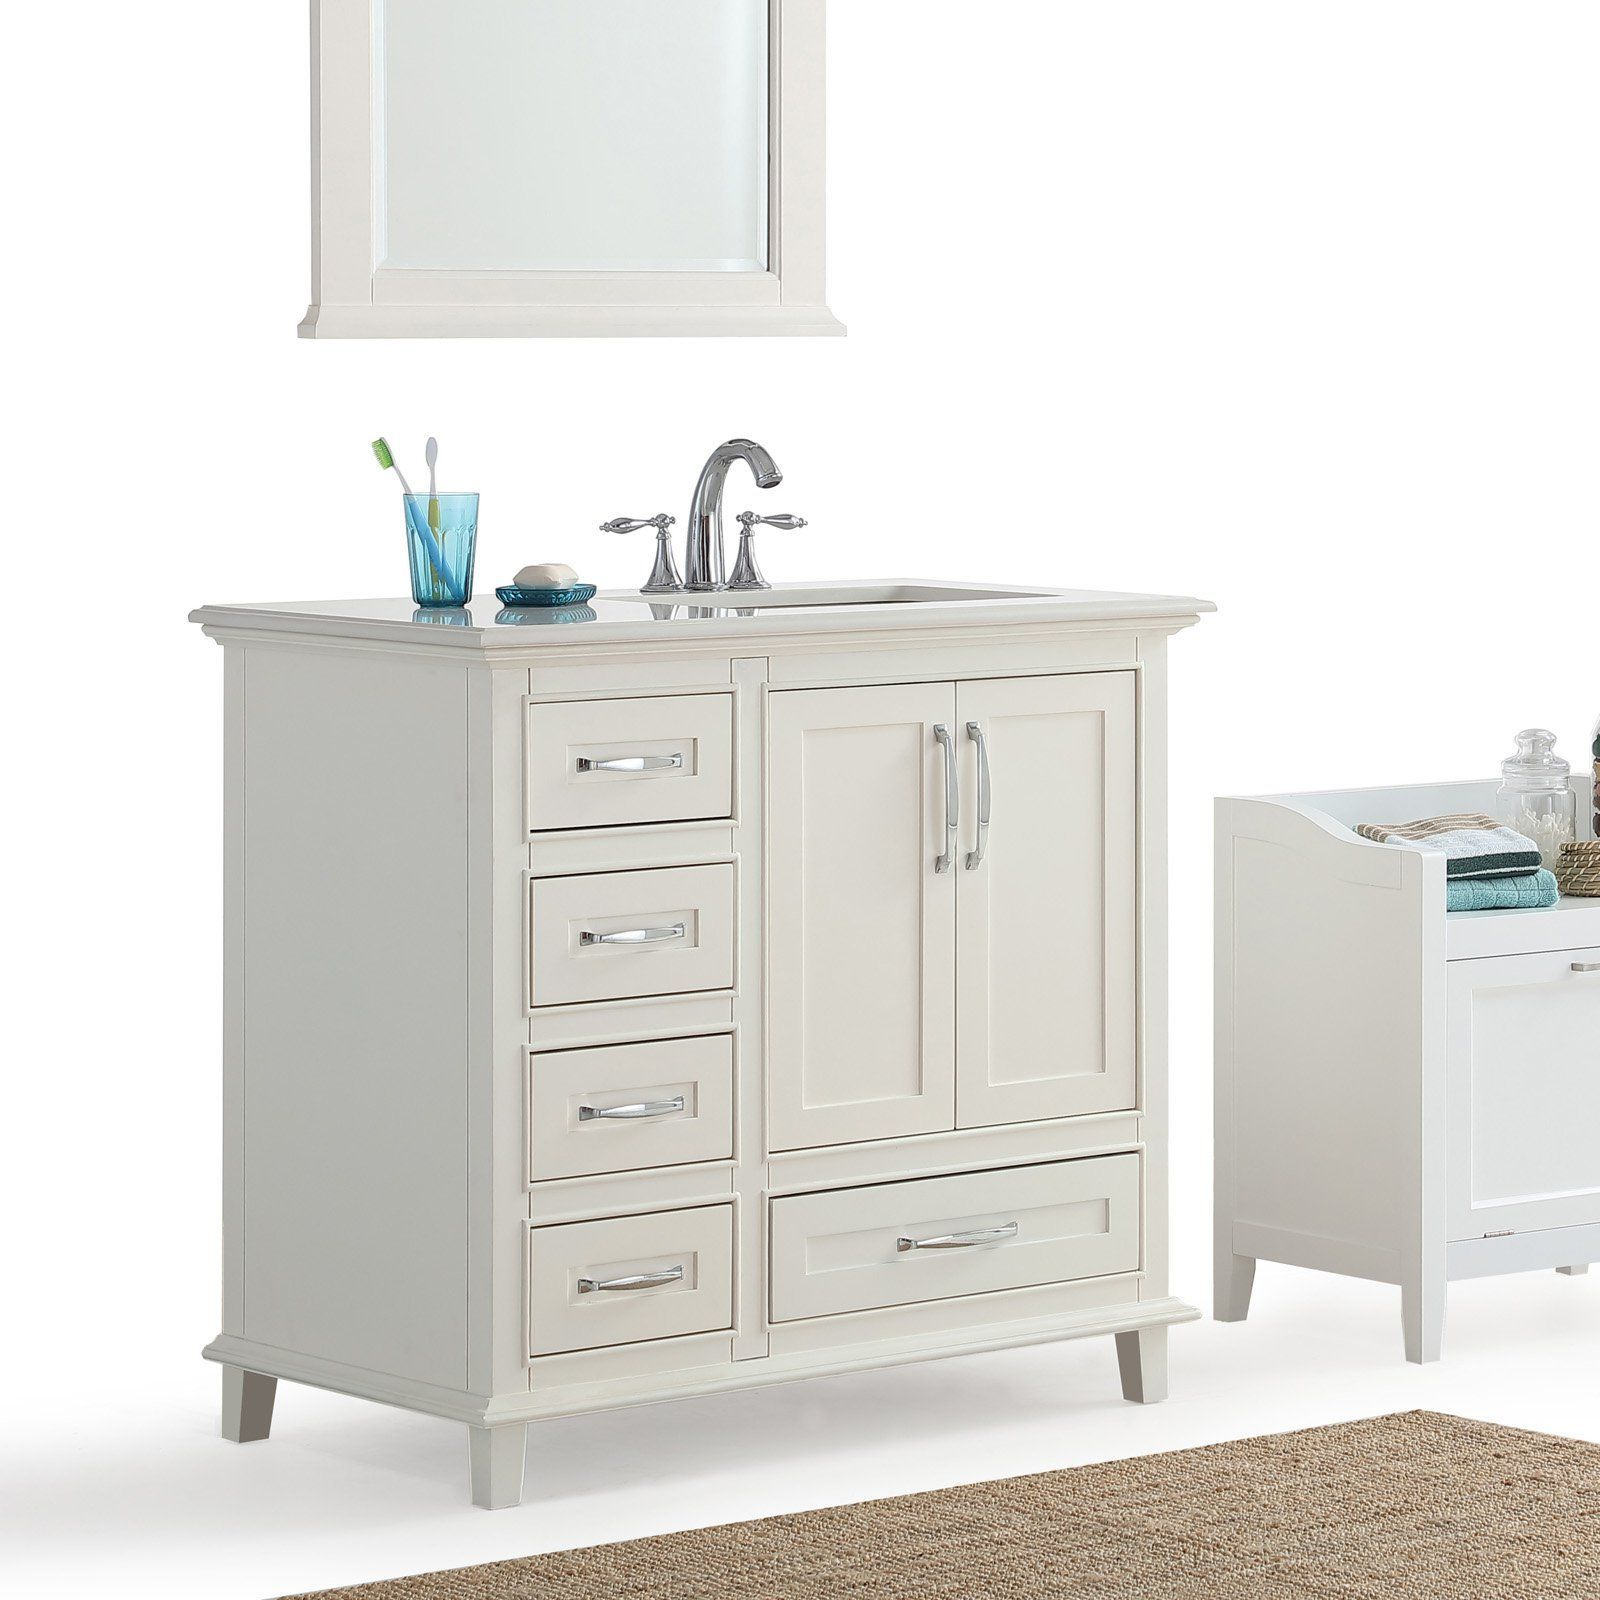 Simpli Home Ariana 36 In Bath Vanity With Right Offset Sink Axcvarw 36r